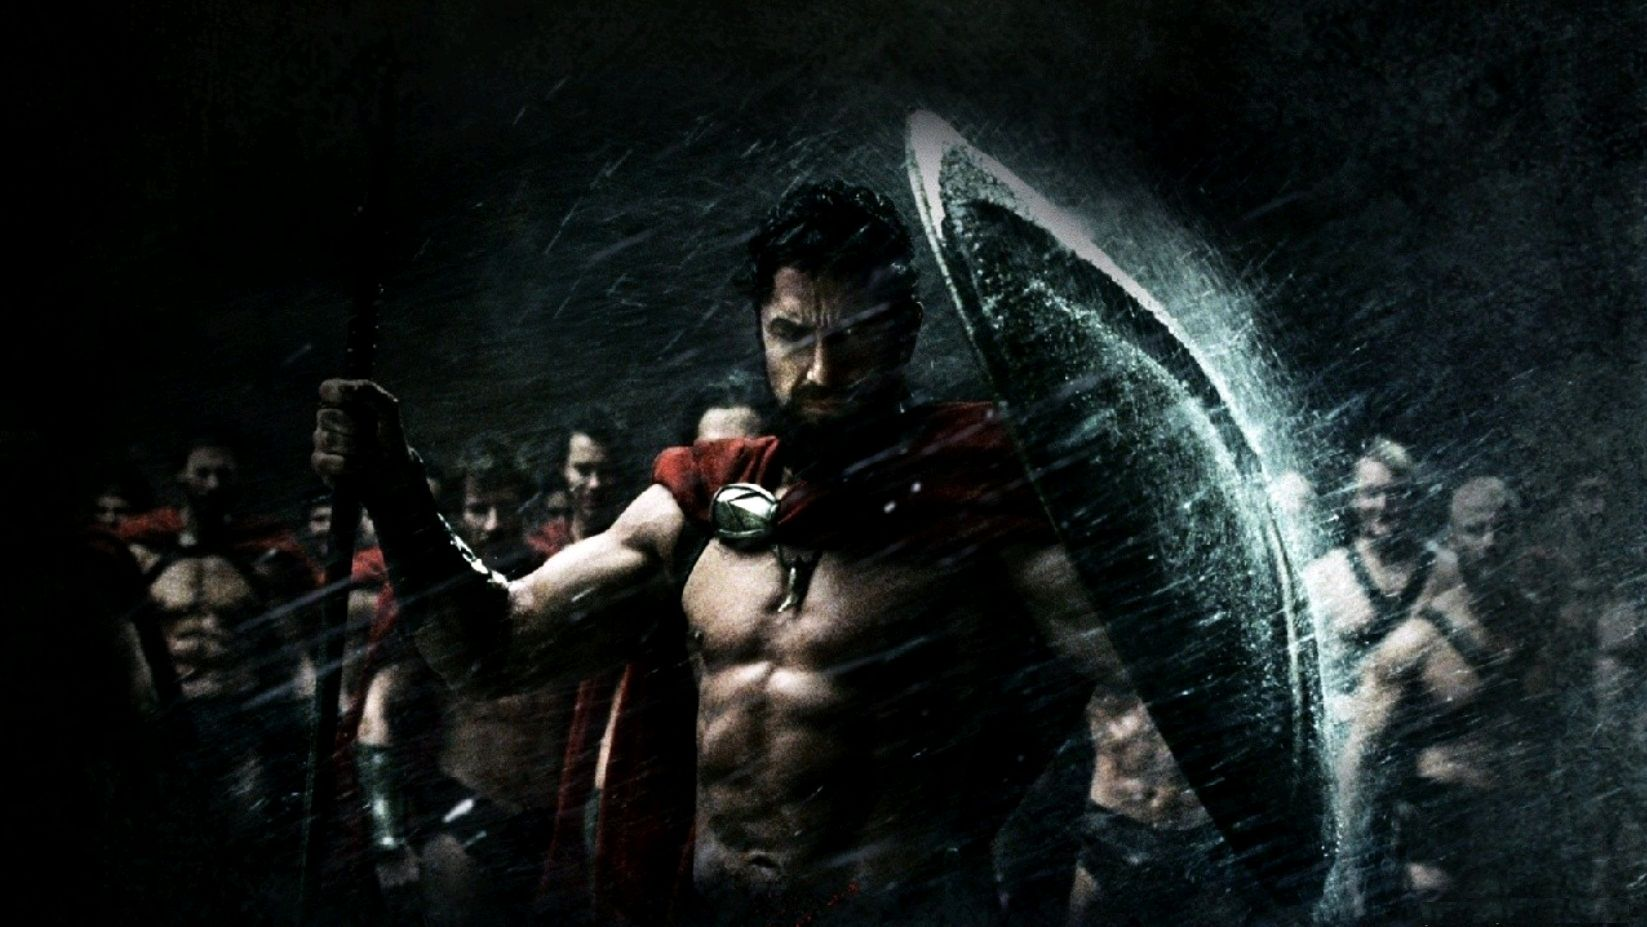 Movie posters: 300 rise of an empire